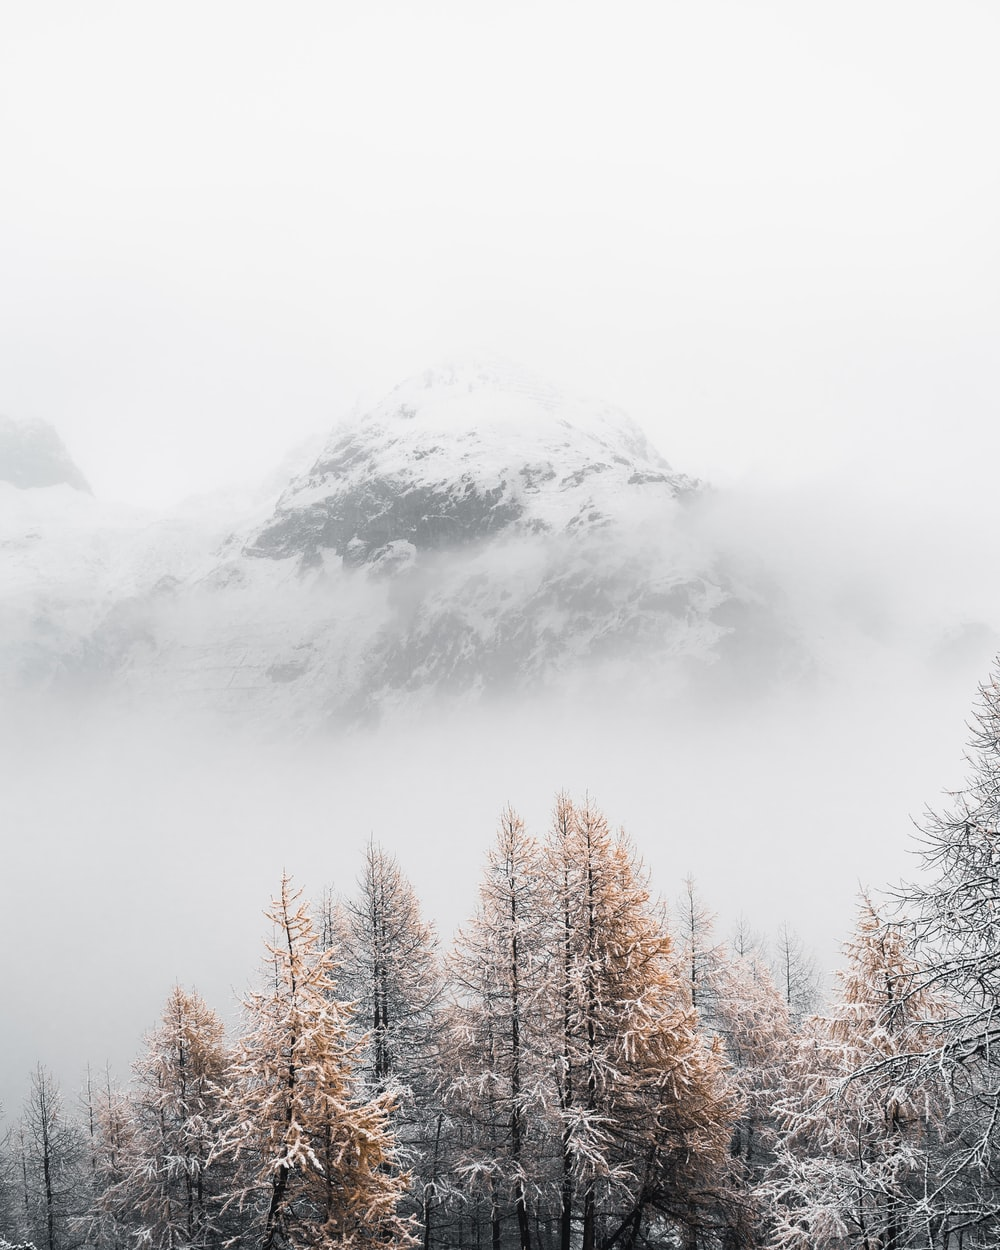 gray trees surrounded by fogs